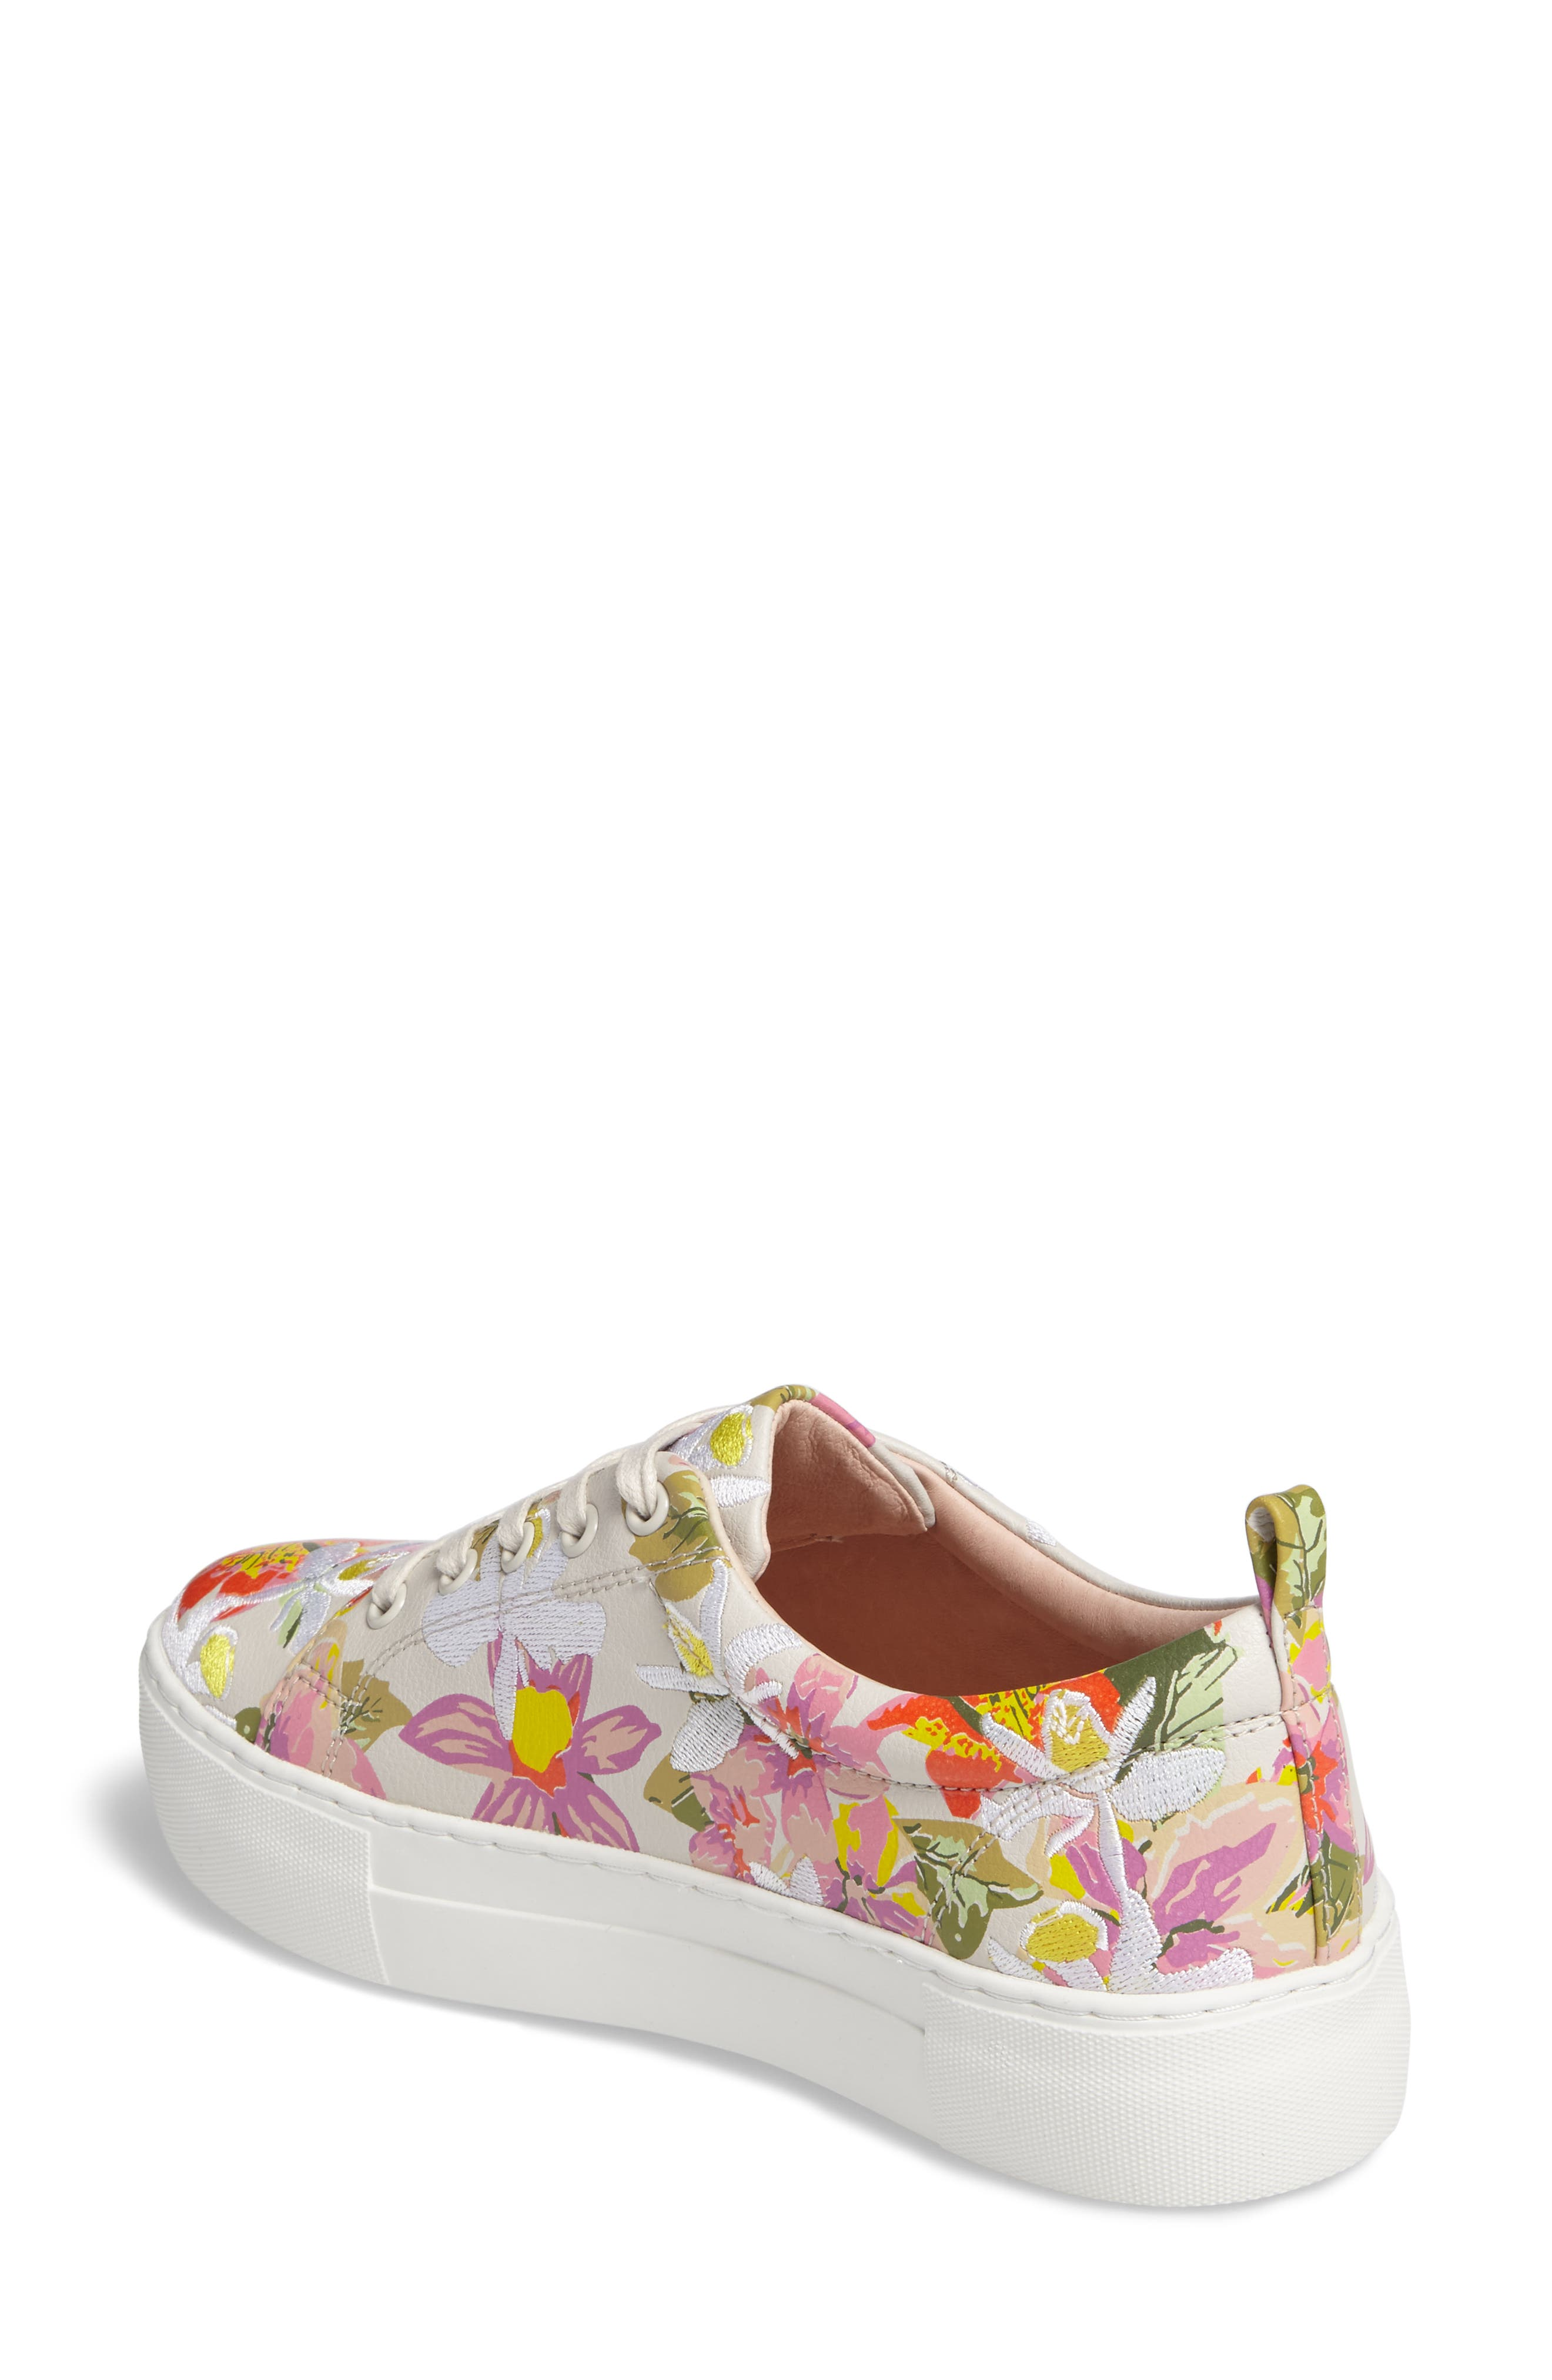 Appy Embroidered Platform Sneaker,                             Alternate thumbnail 2, color,                             650